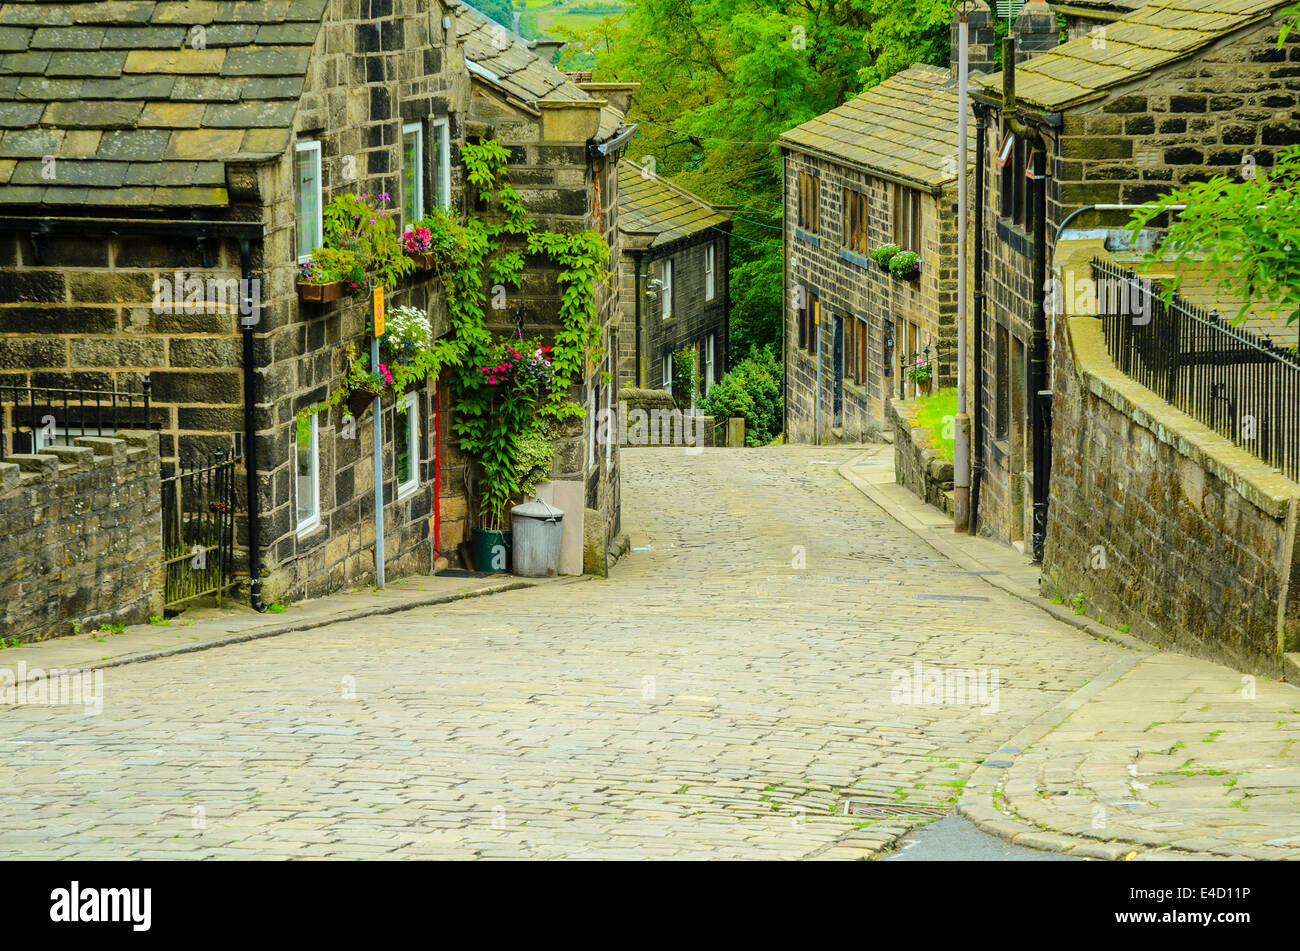 The cobbled main street at Heptonstall West Yorkshire - Stock Image